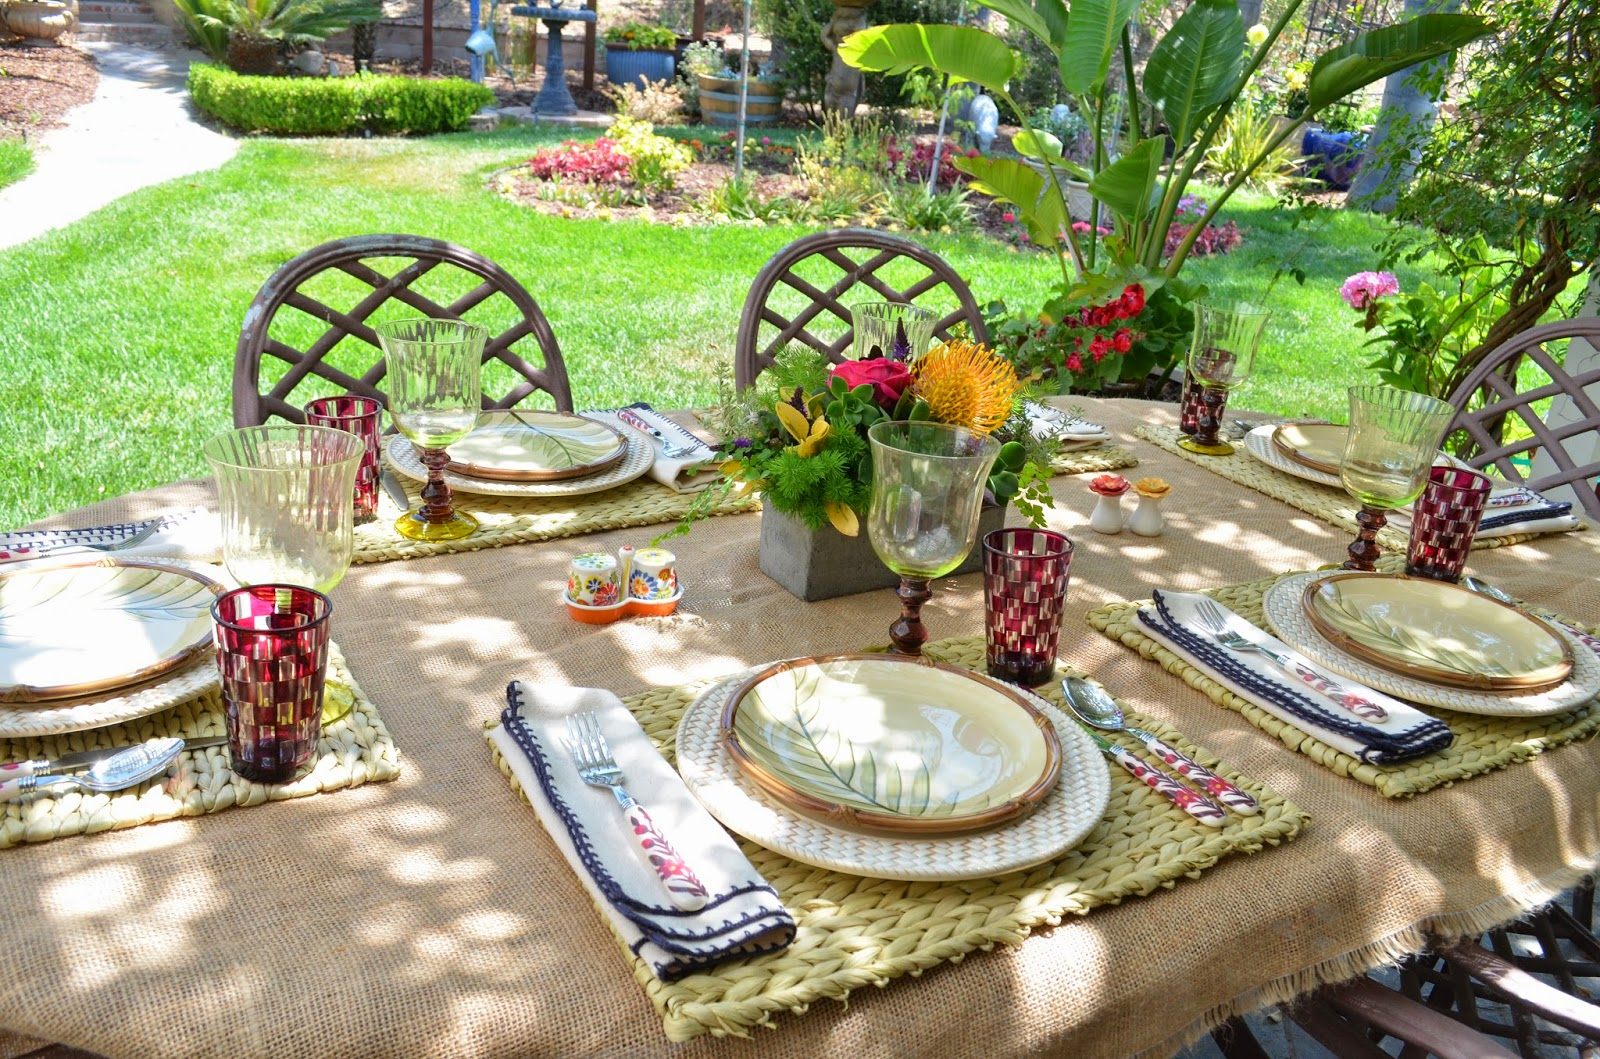 Entertaining From an Ethnic Indian Kitchen Fathers day tablescape